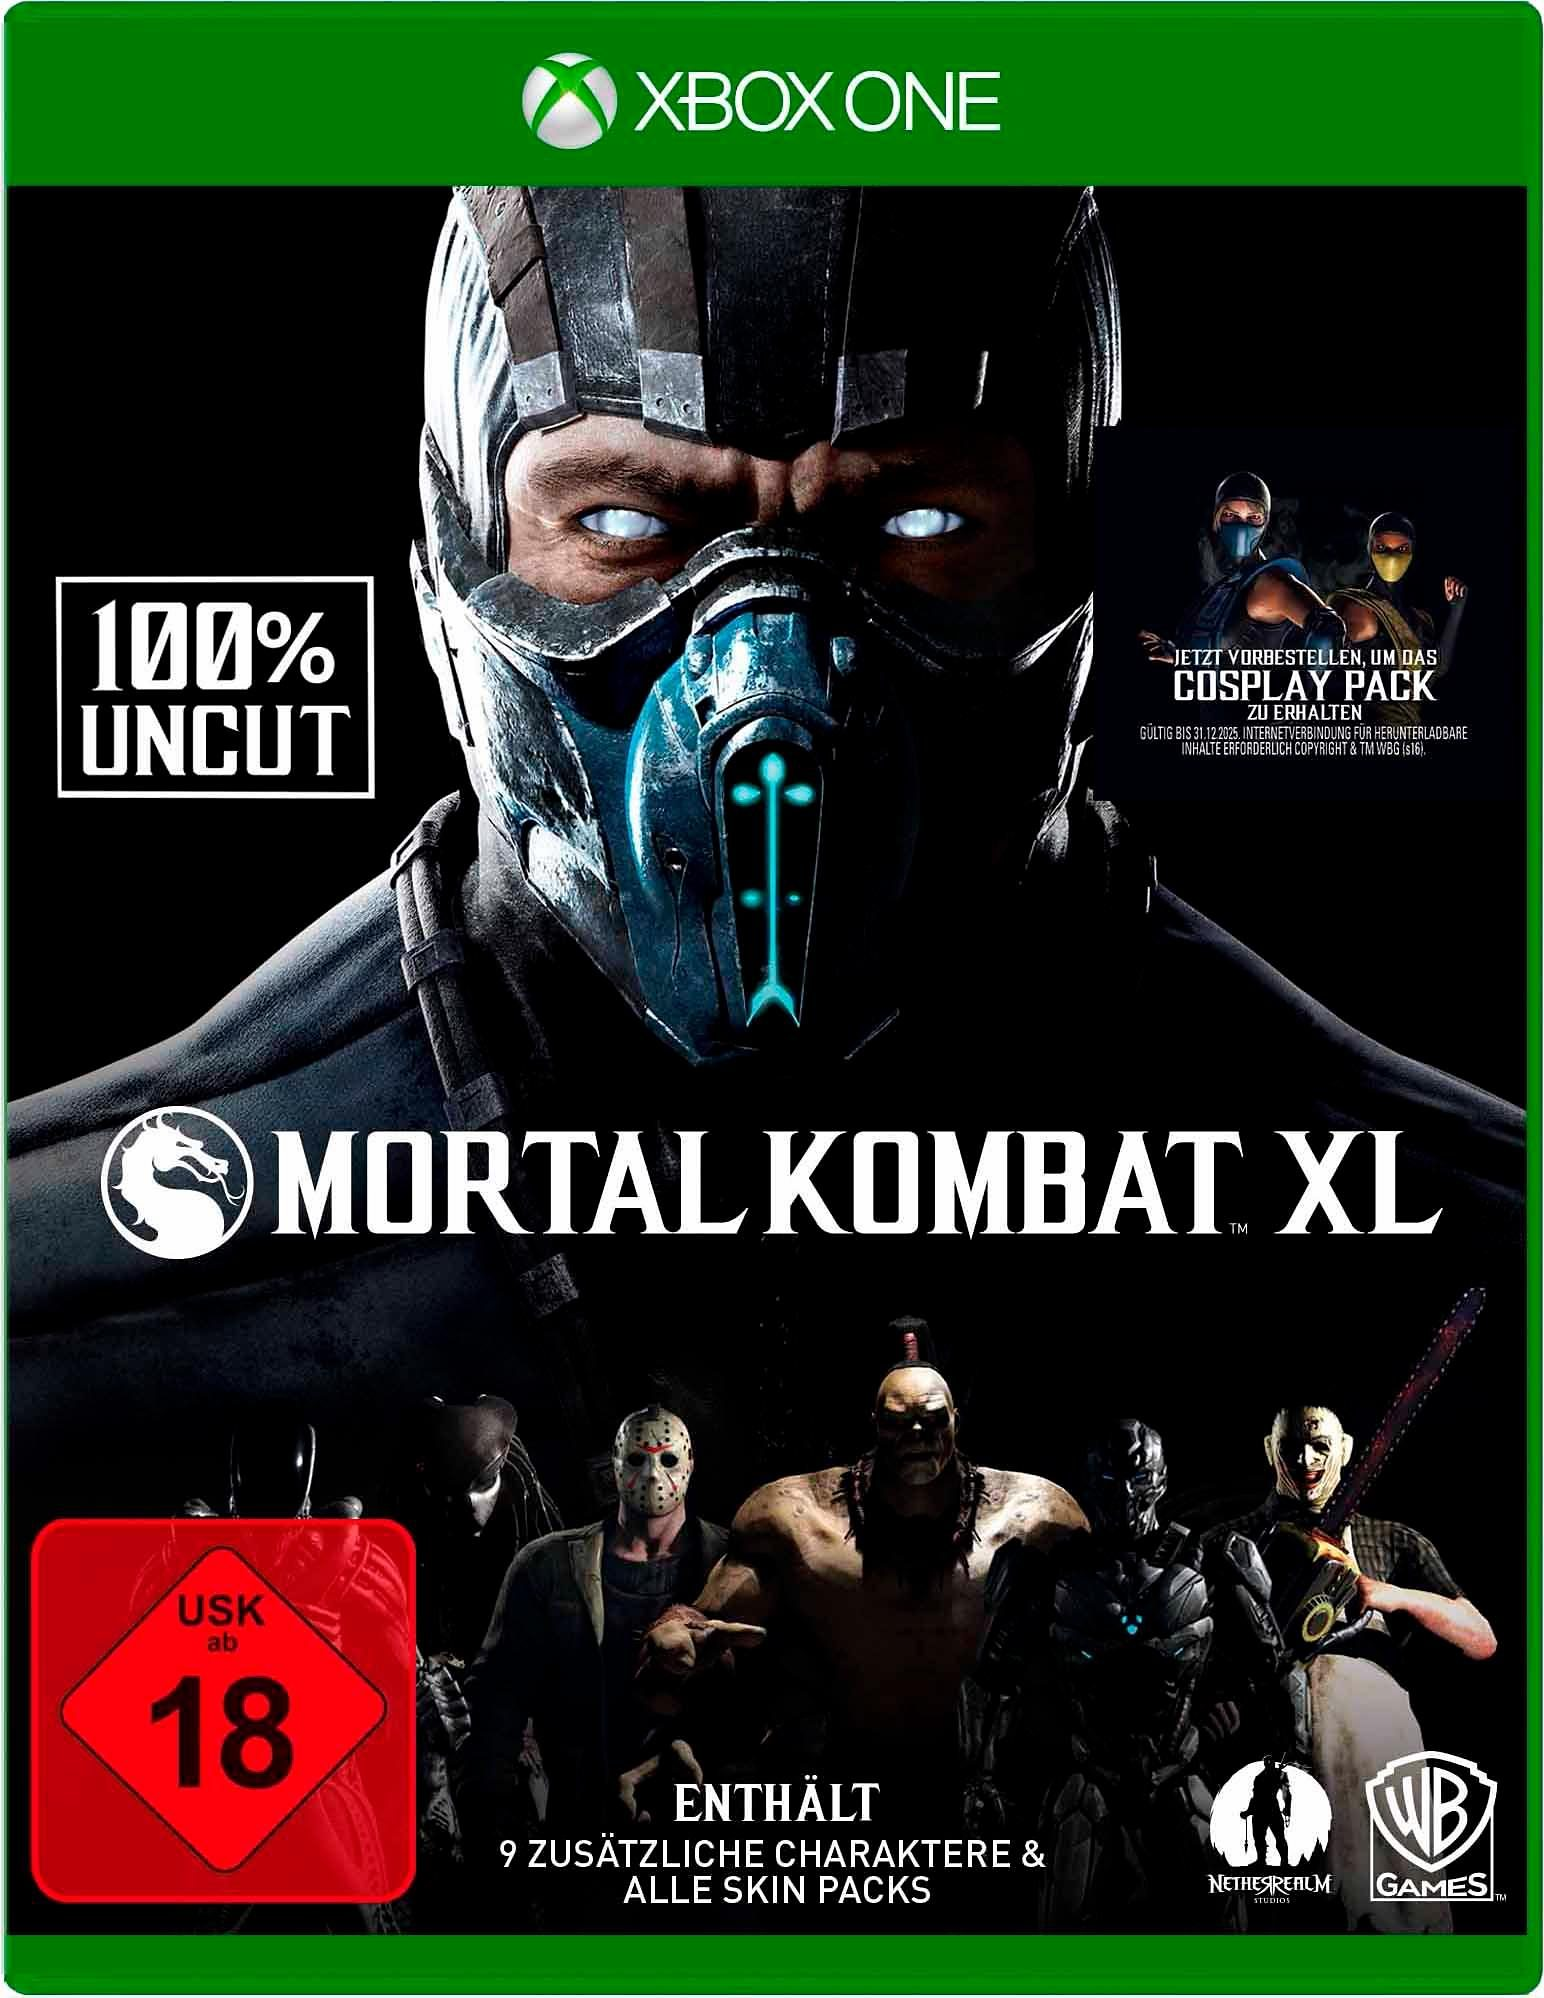 Mortal Kombat XL 100% Uncut Xbox One